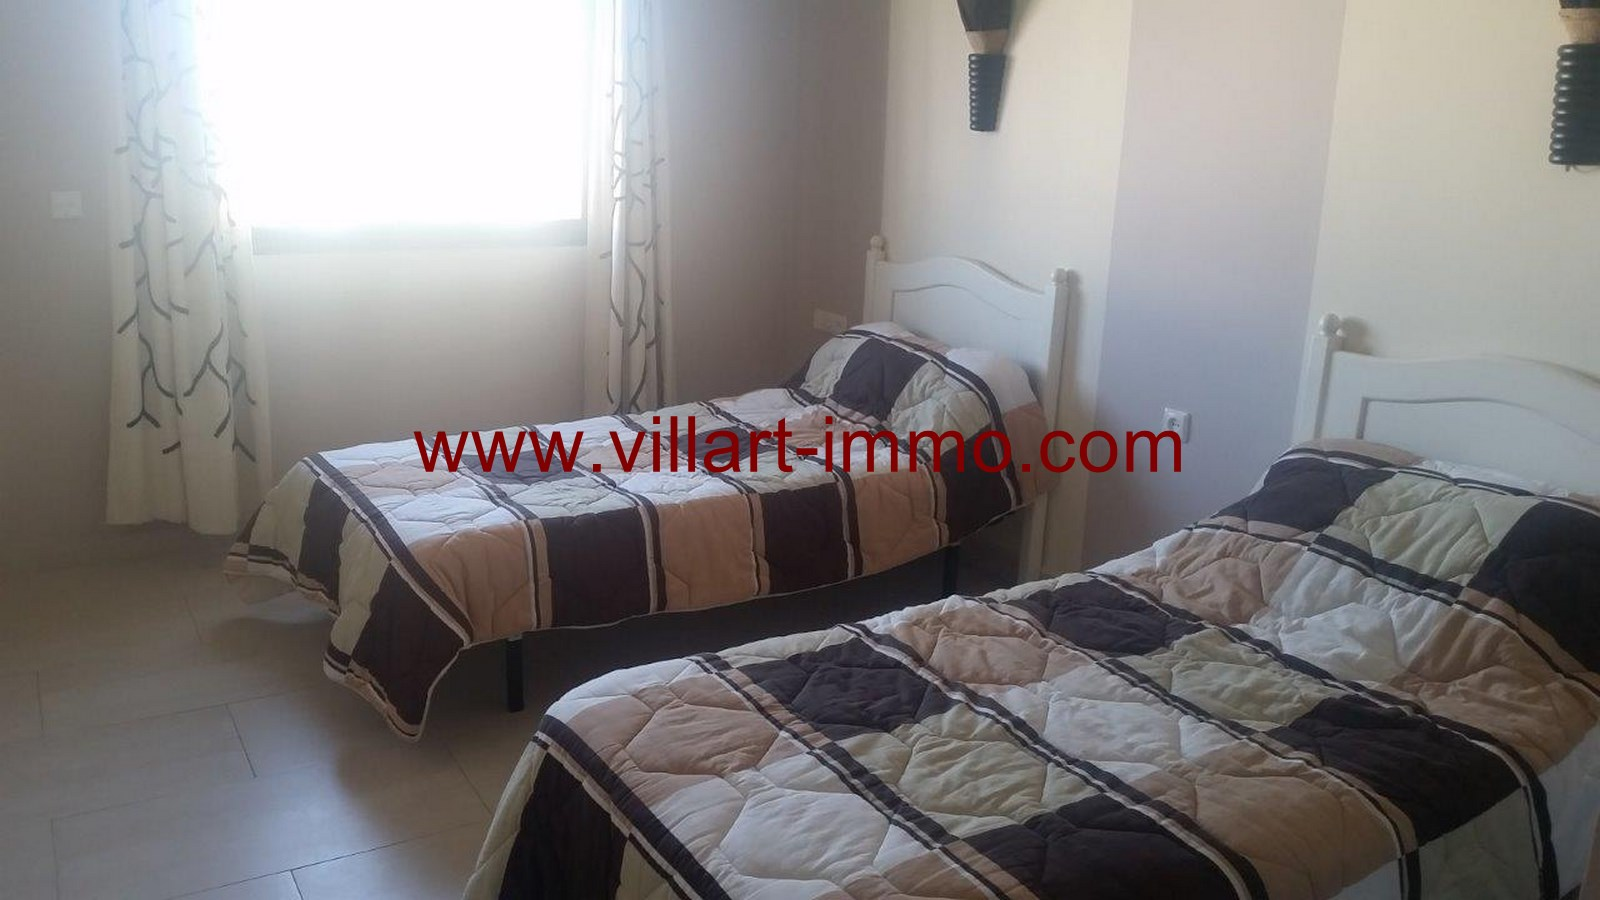 17-To Let-Villa-Furnished-Tangier-Bedroom 4-LSTV986-Villart-Immo